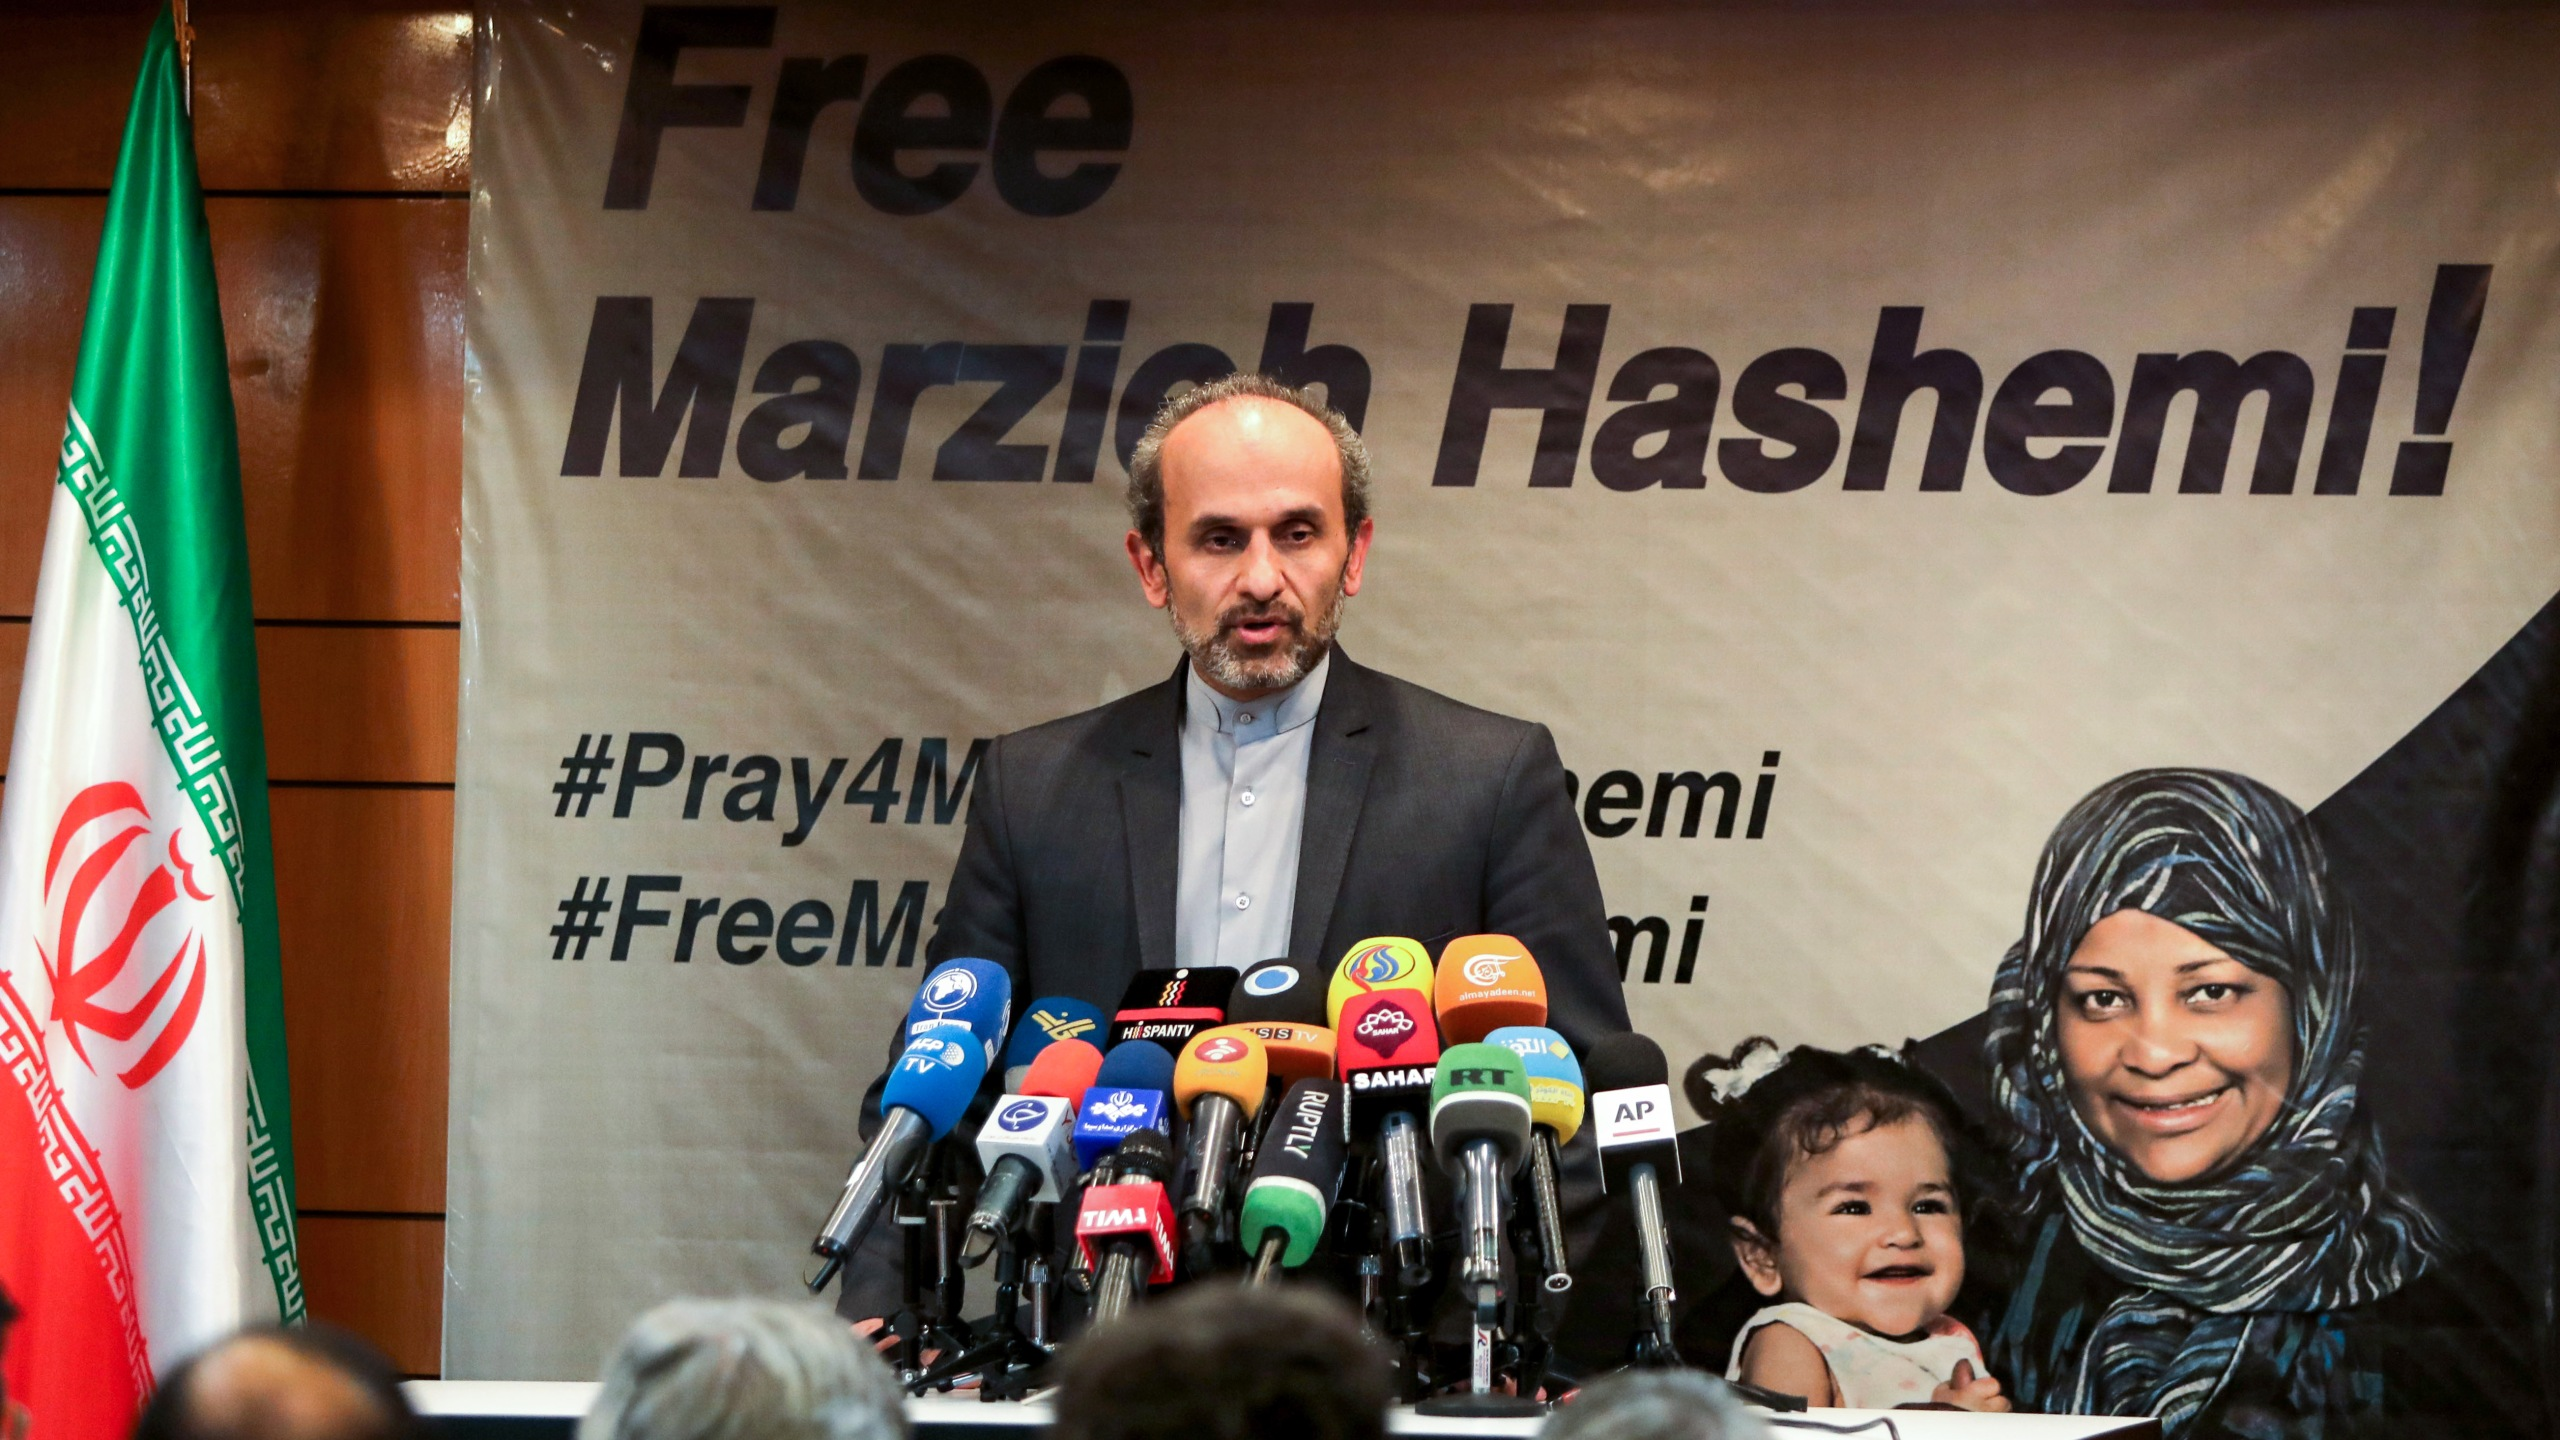 Peyman Jebelli, chief of the world service for the Islamic Republic of Iran Broadcasting speaks during a press conference in the capital Tehran on Jan. 16, 2019. (Credit: Atta Kenare/AFP/Getty Images)